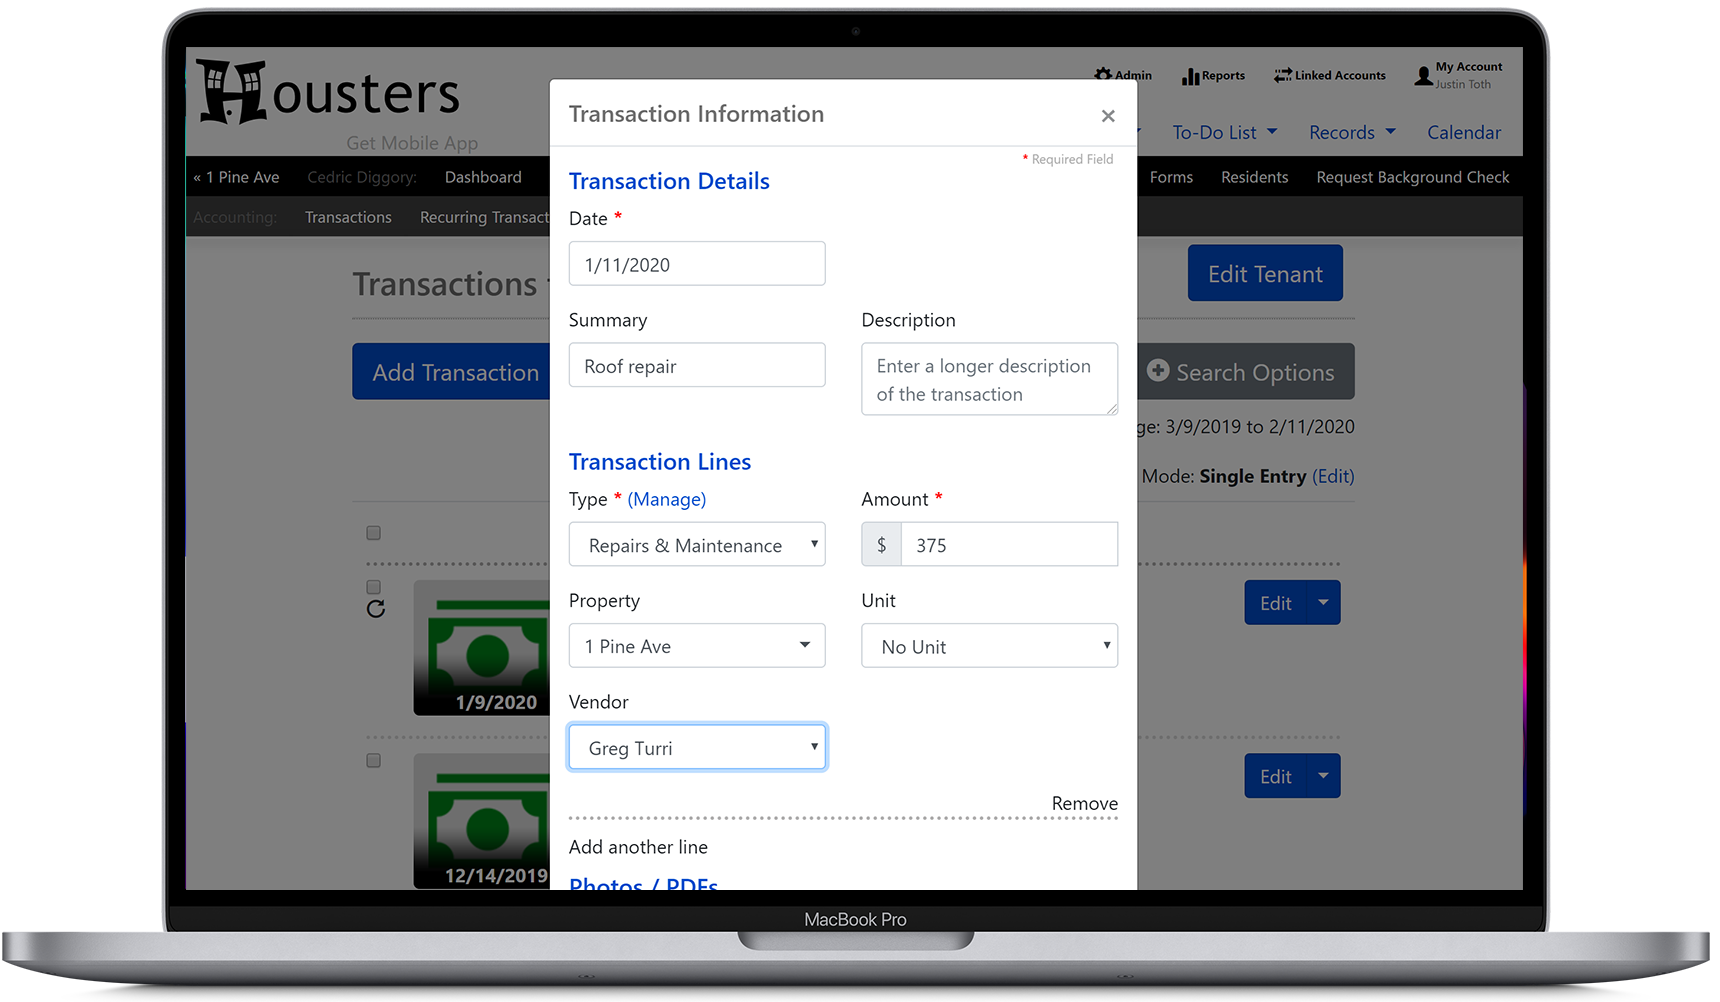 Add a rental expense transaction